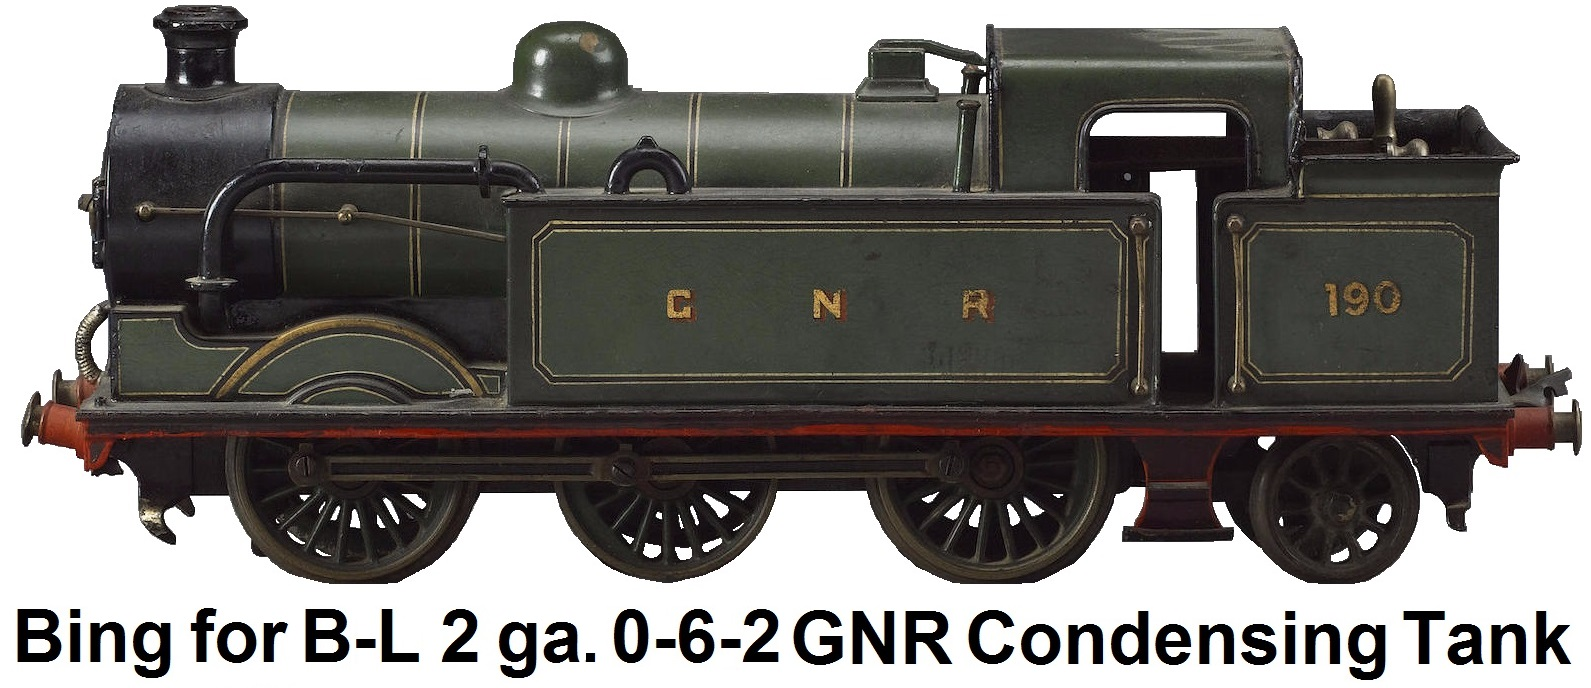 Bing for Bassett-Lowke Gauge II 0-6-2 GNR Condensing Tank engine